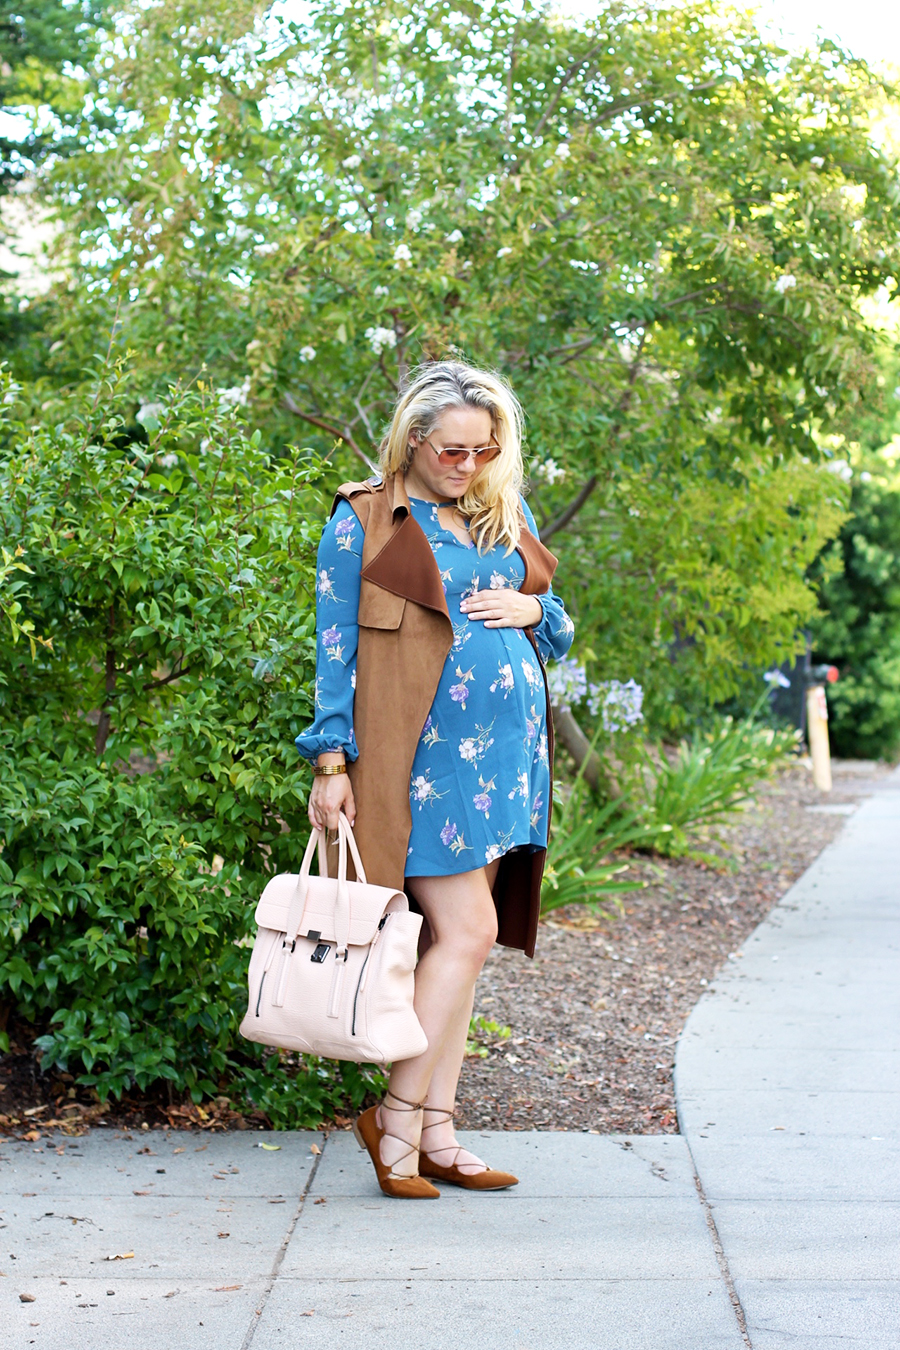 Fall Transition-Nordstrom Anniversary Sale-Maternity Style-Fall Fashion-Have Need Want 9